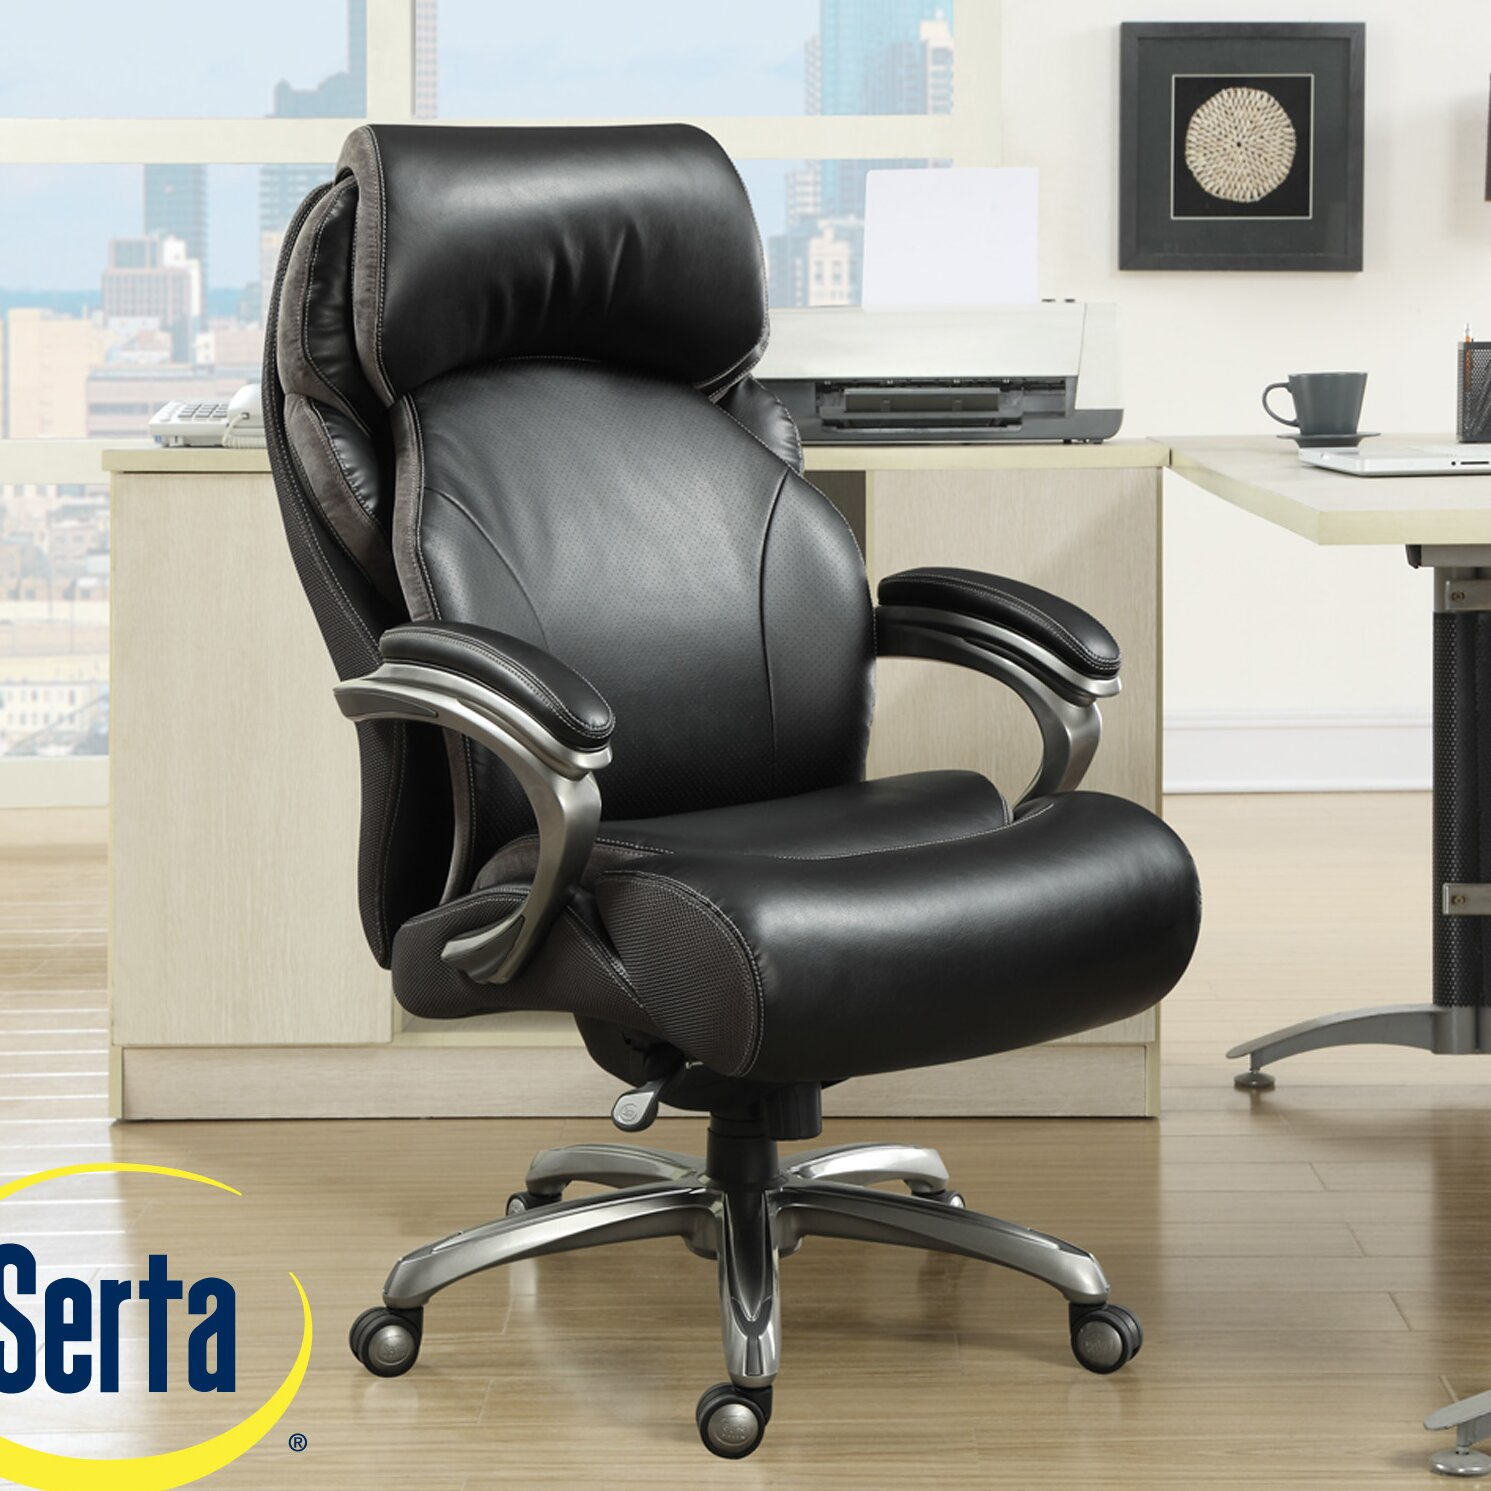 Serta At Home Tranquility High Back Executive Chair With AIR Technology Amp